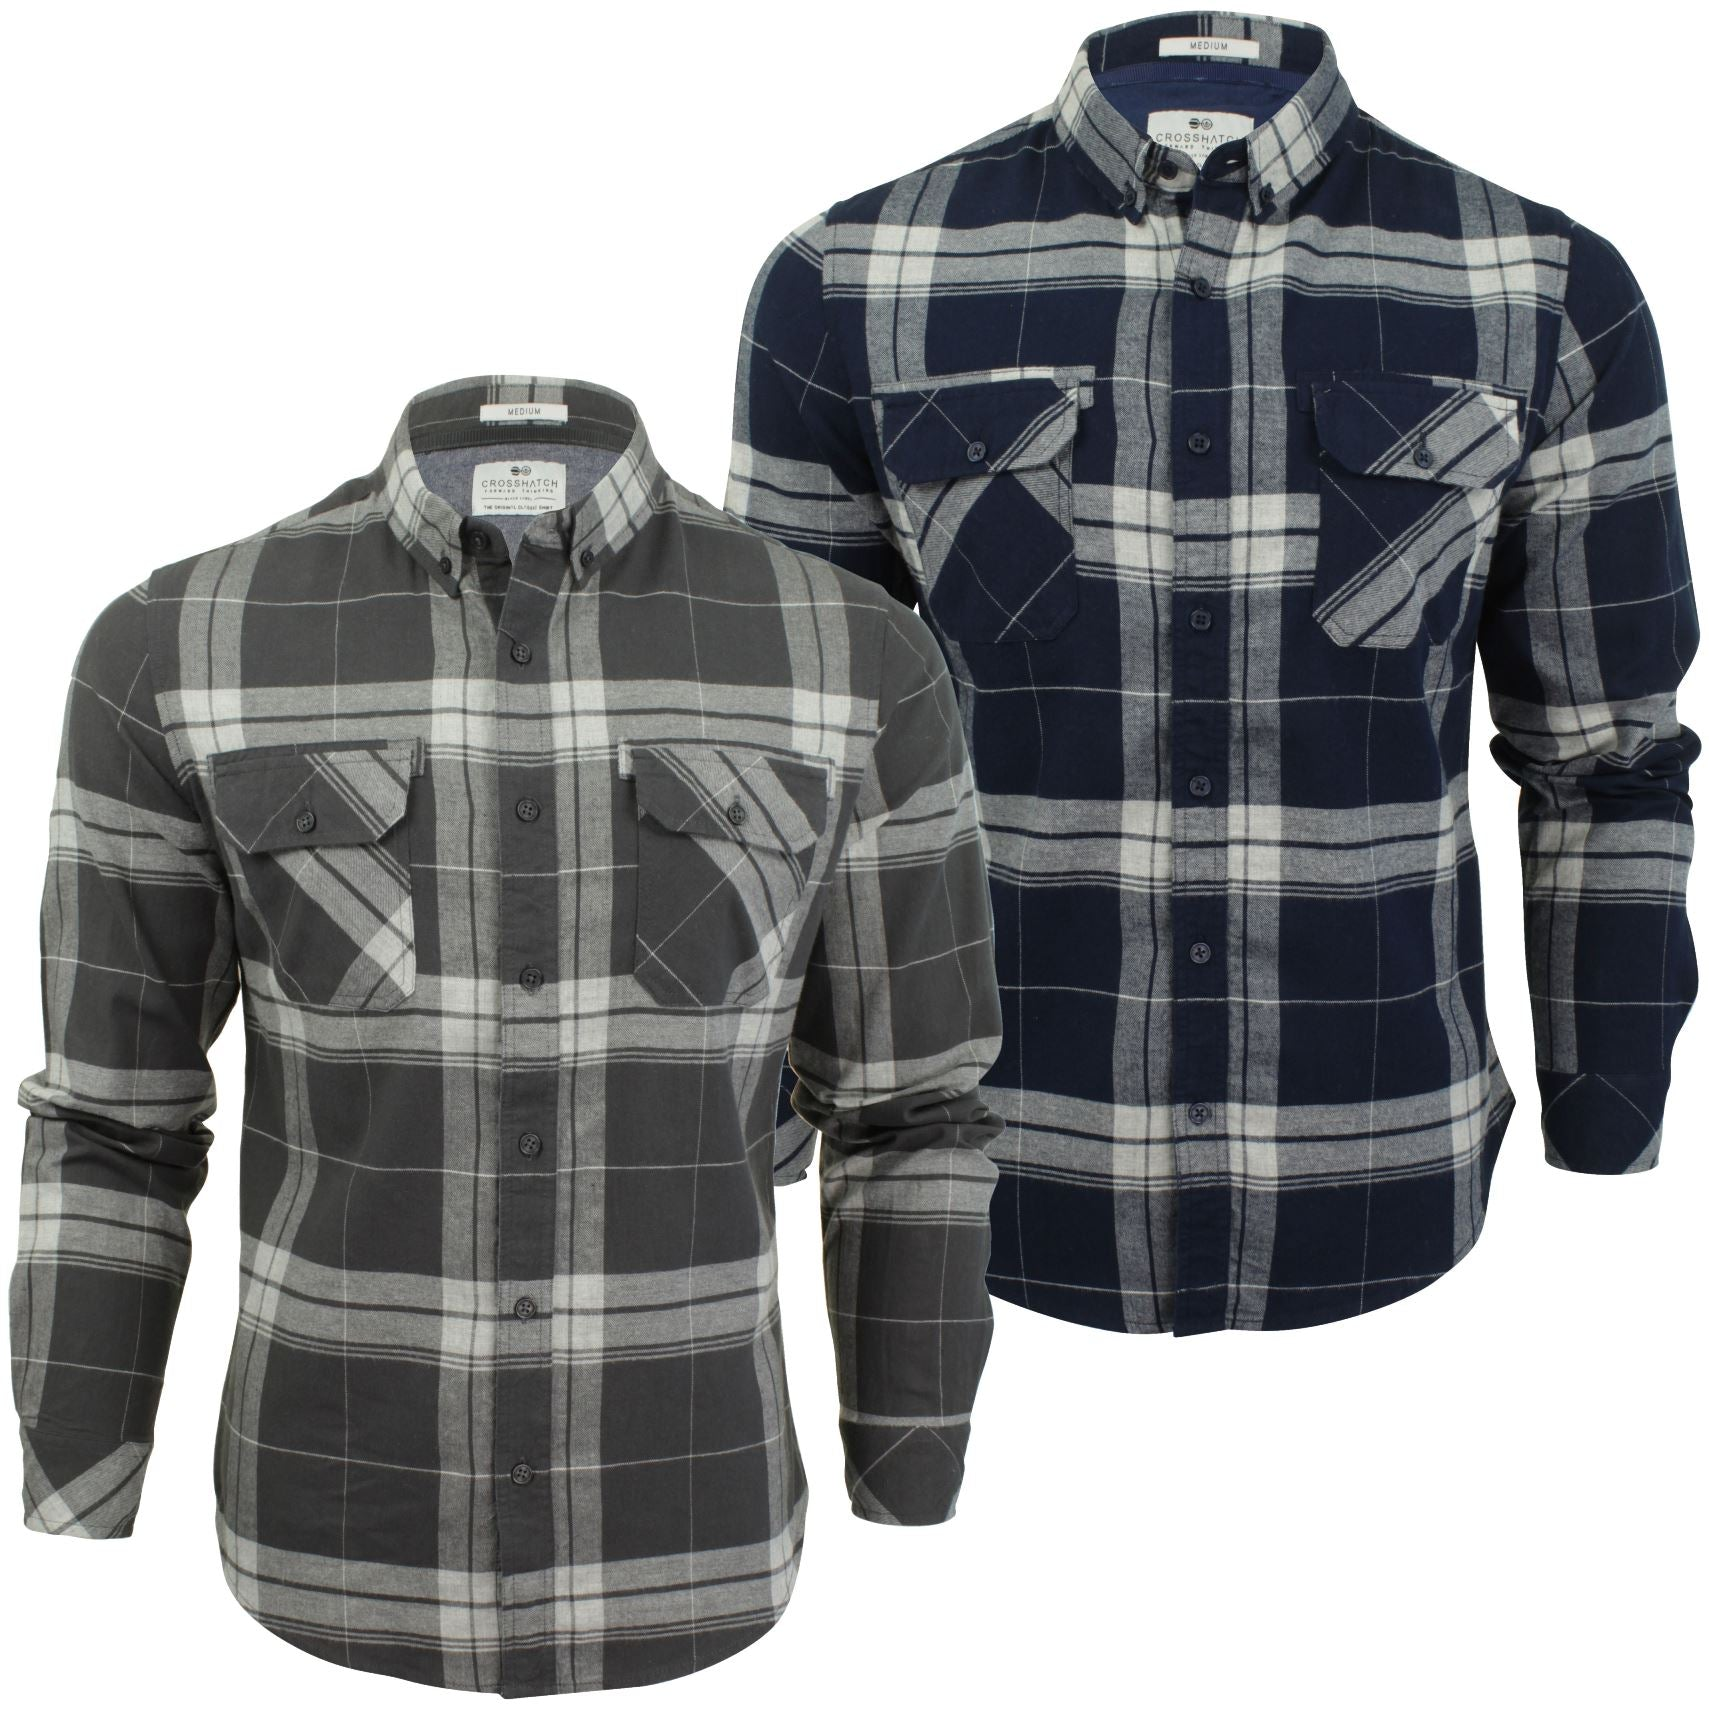 Mens Check Shirt by Crosshatch 'Mitty' Long Sleeved-Main Image